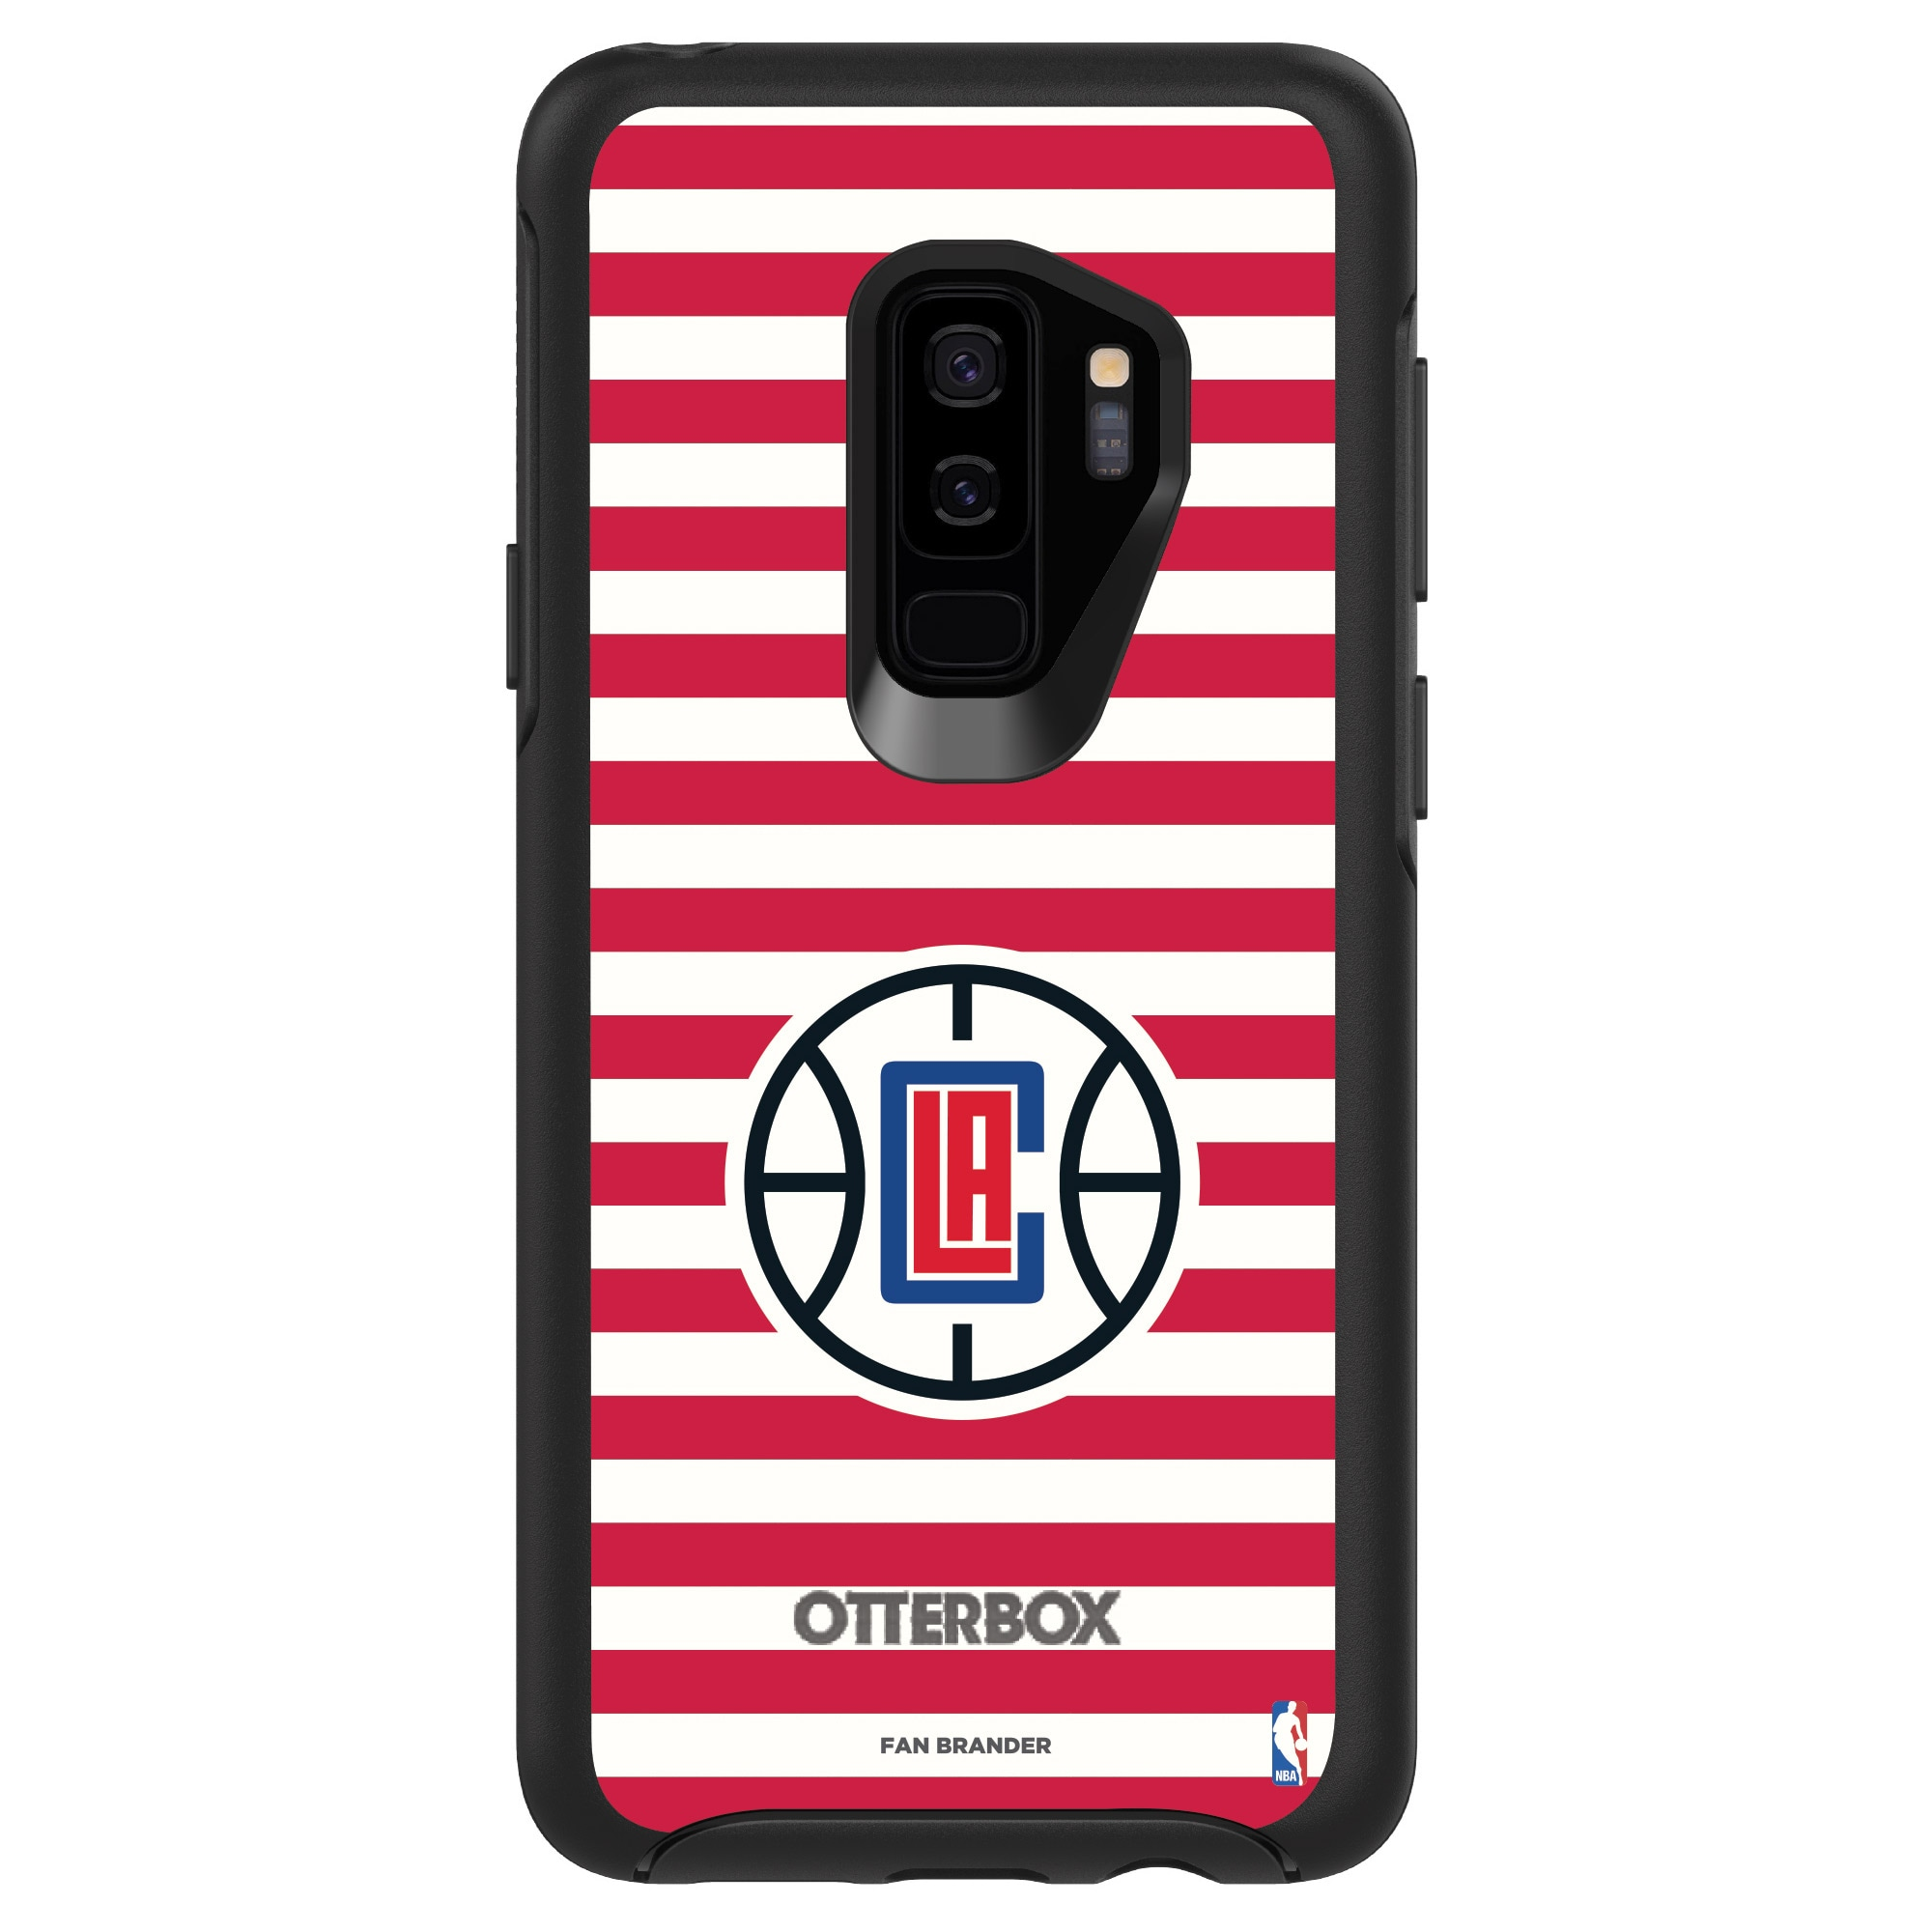 LA Clippers OtterBox Galaxy Symmetry Striped Design Case